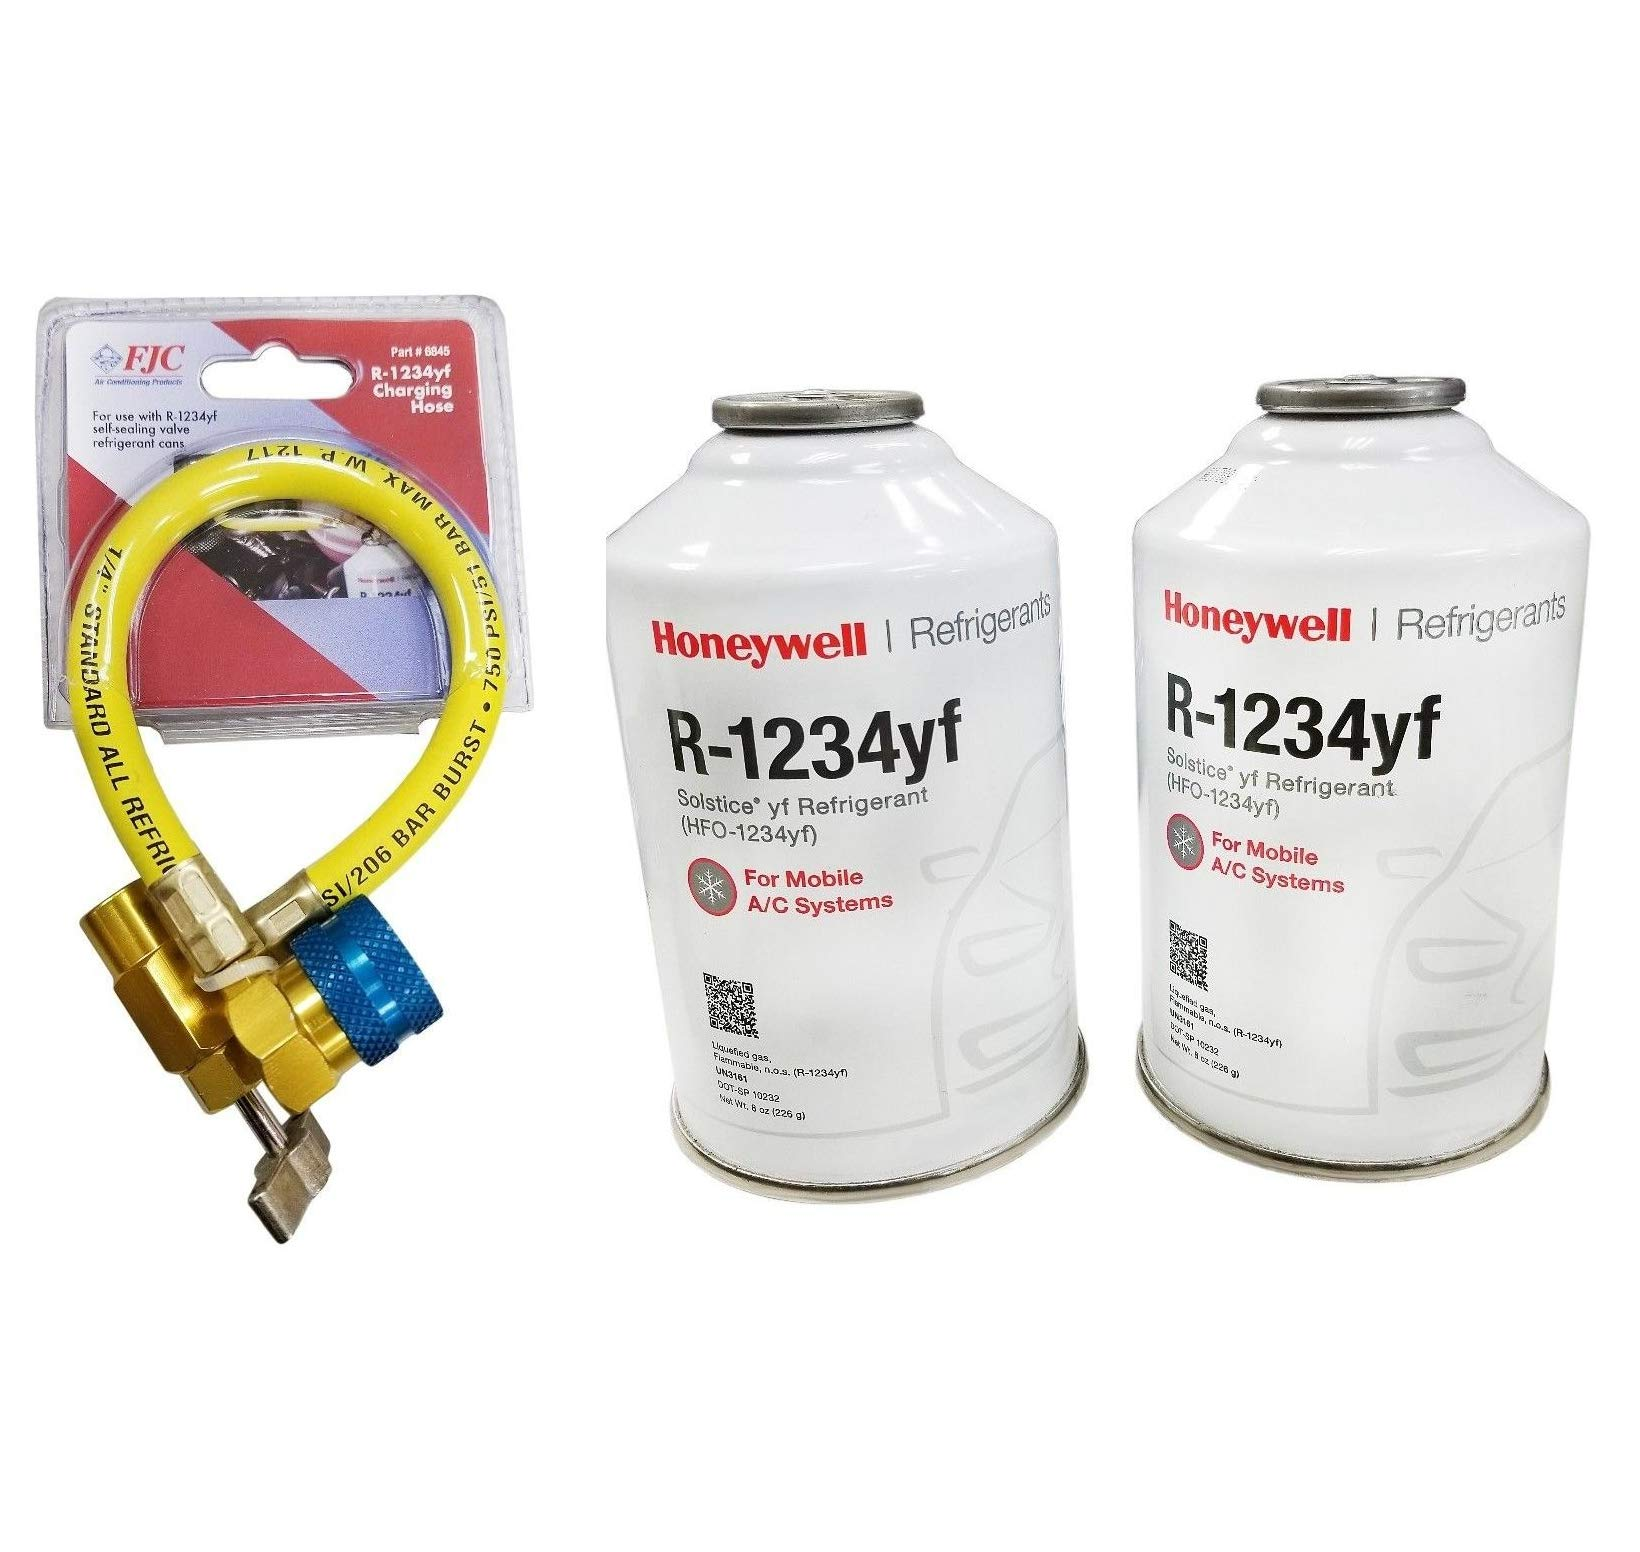 Pair Cans of R1234yf Refrigerant 8ounce Compatible w/SoIstice w/Charging Hose Quick Delivery by $/Reliable (Image #1)